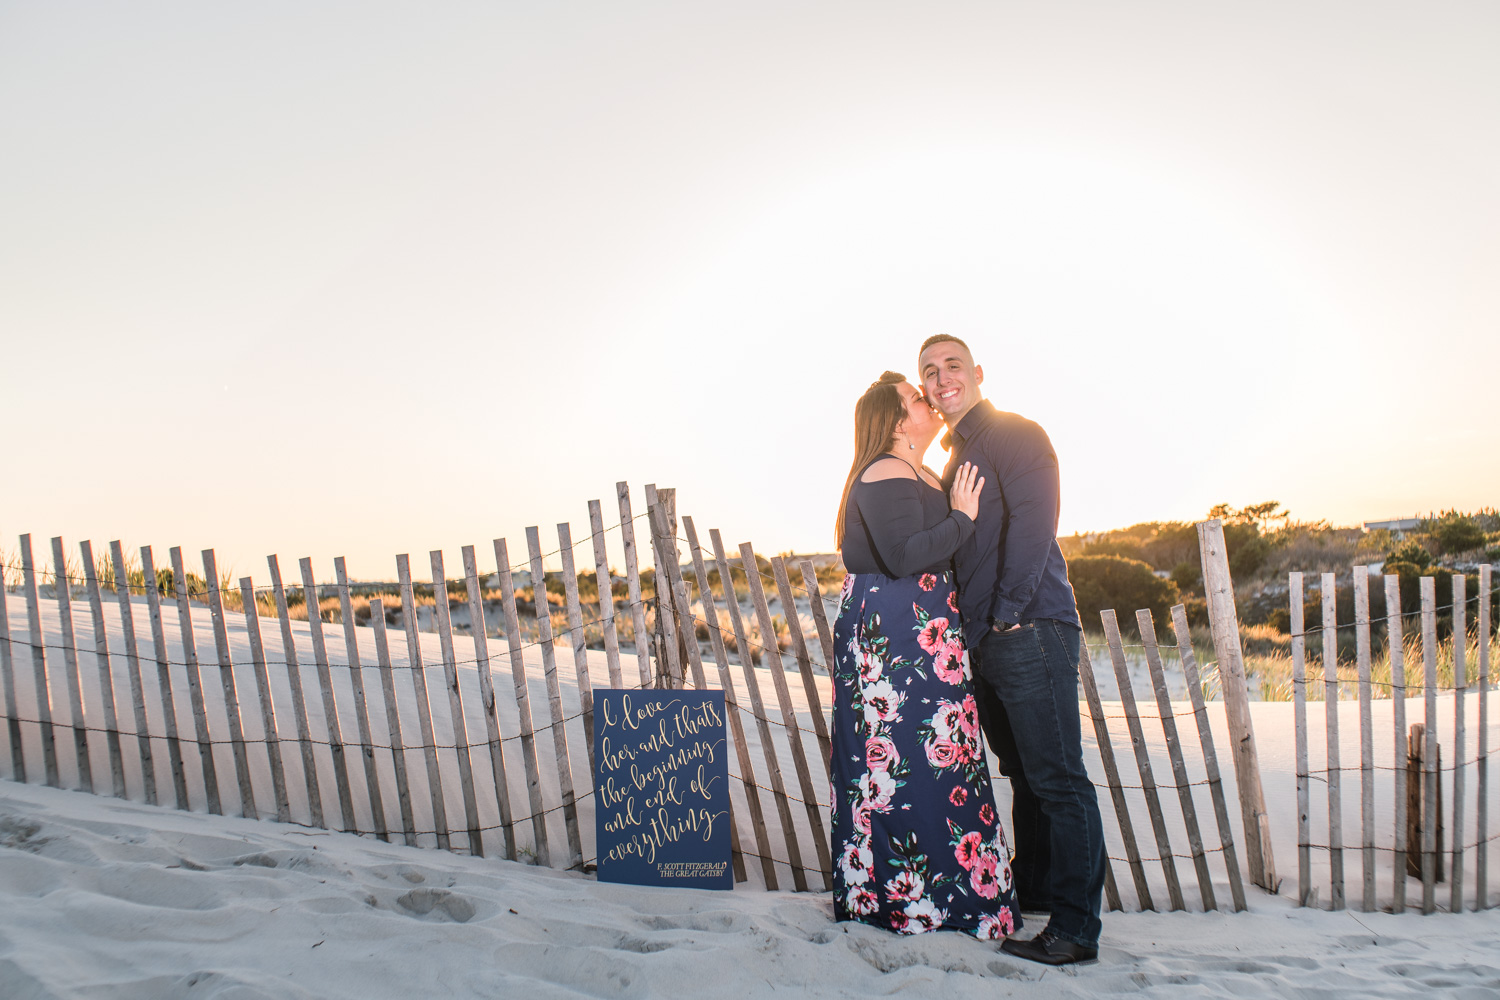 lbi-wedding-photographer-lbi-engagement-dan-beckie--8.jpg